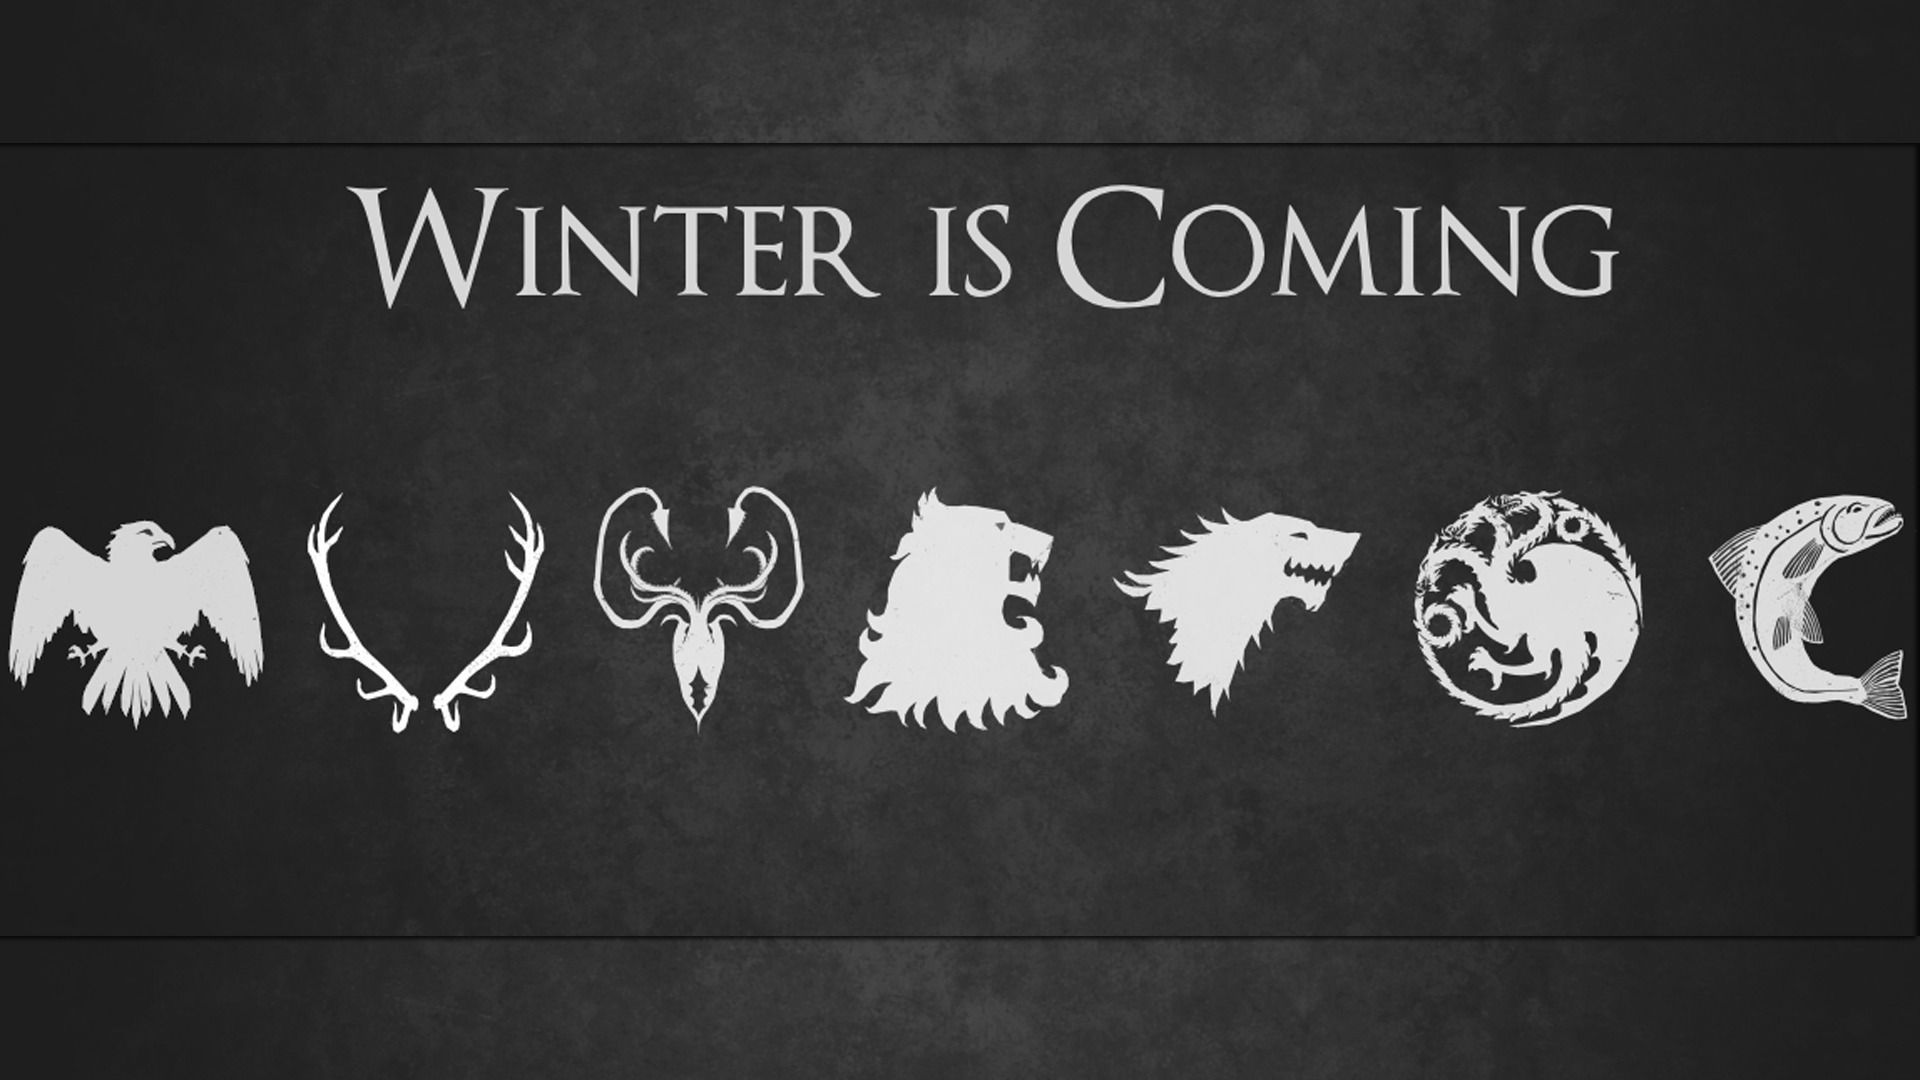 1024x768 Winter Is Coming Wallpaper From The House Stark By WillaWombat On